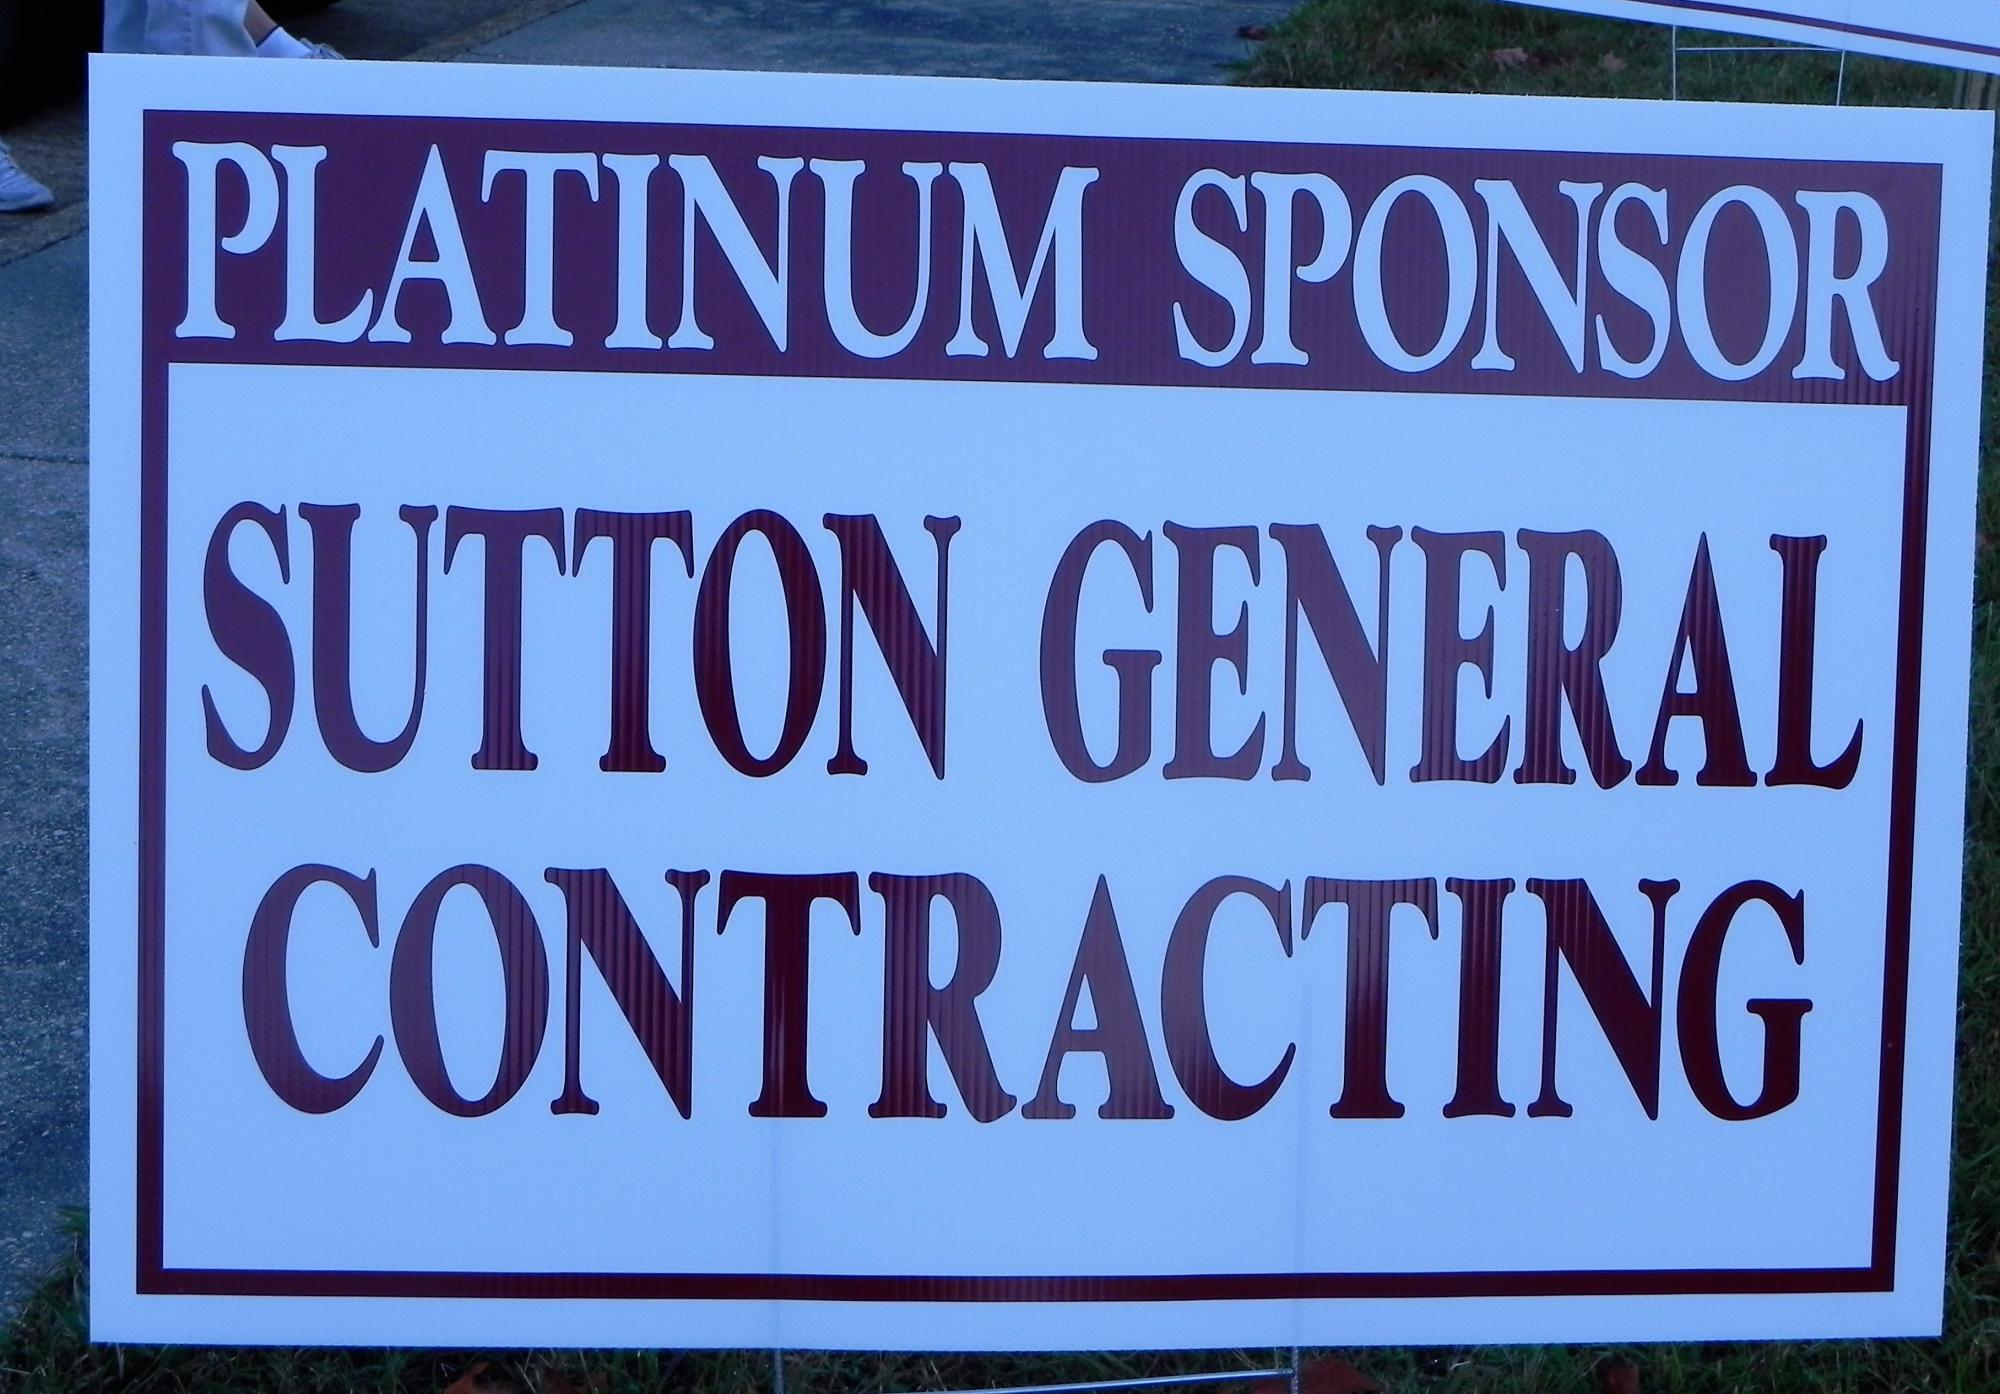 Sign_Sutton_Gen_Contracting.jpg